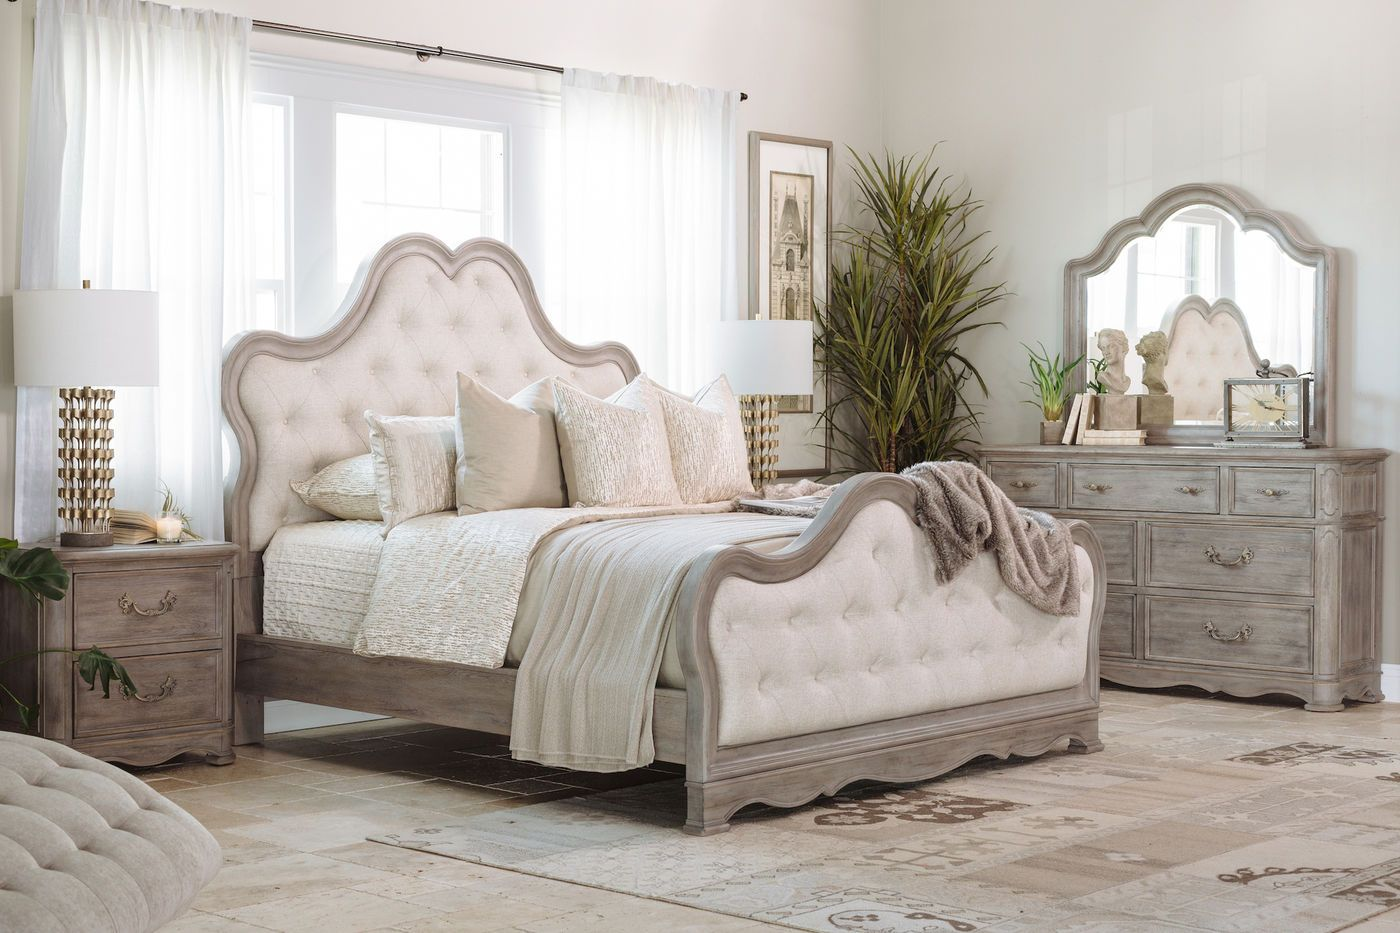 Pulaski Simply Charming Upholstered Bed Contemporary Bedroom Sets Contemporary Style Bedroom Contemporary Bedroom